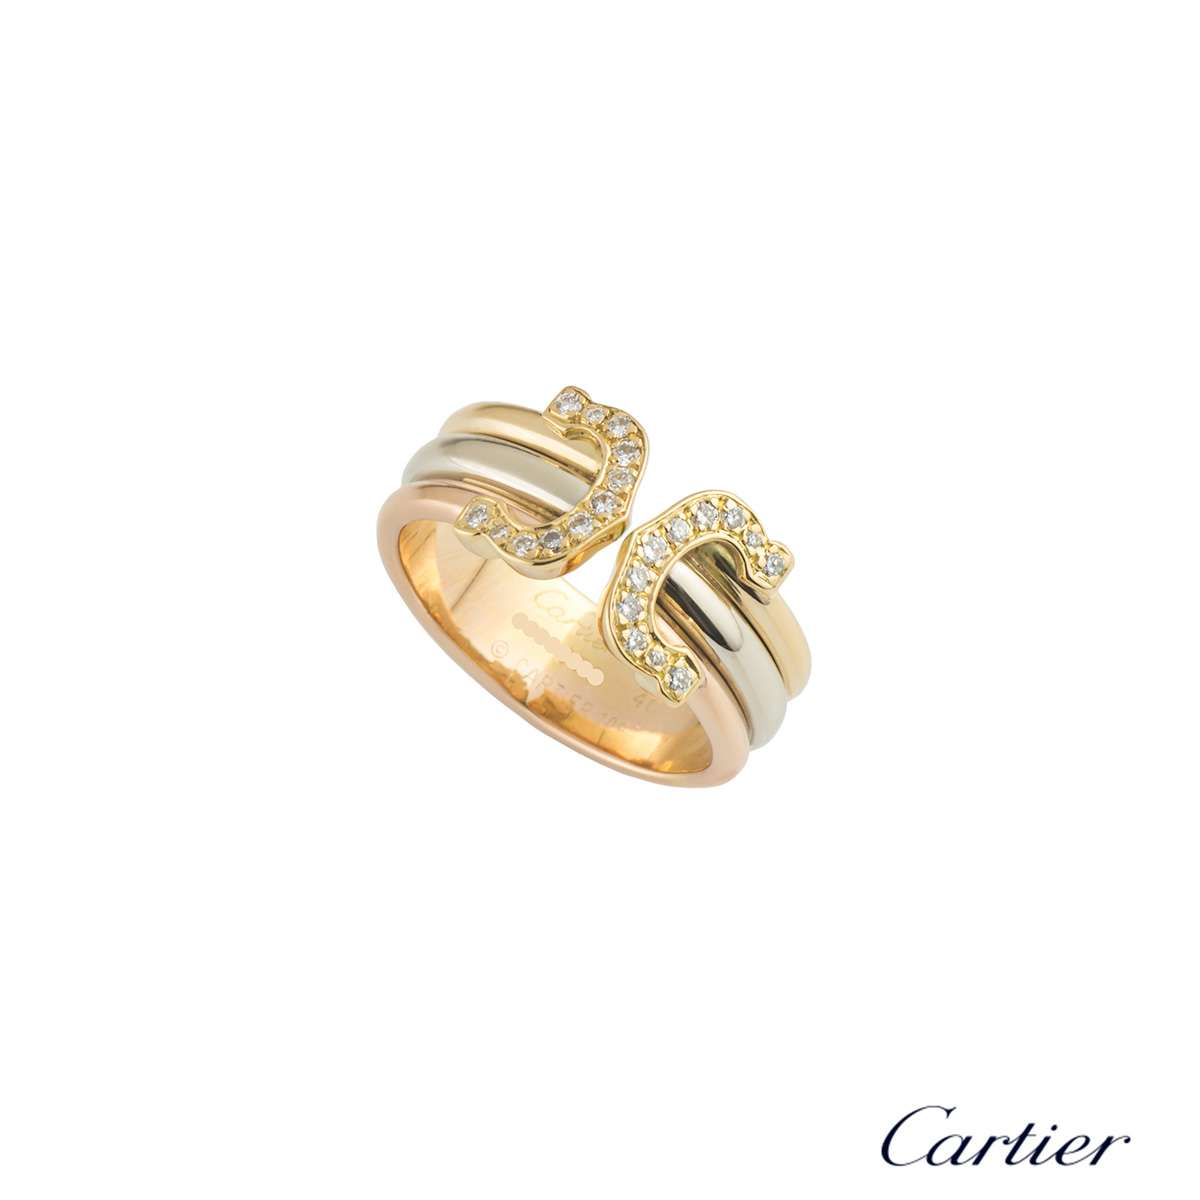 Cartier Tri-Colour Gold C de Cartier Ring